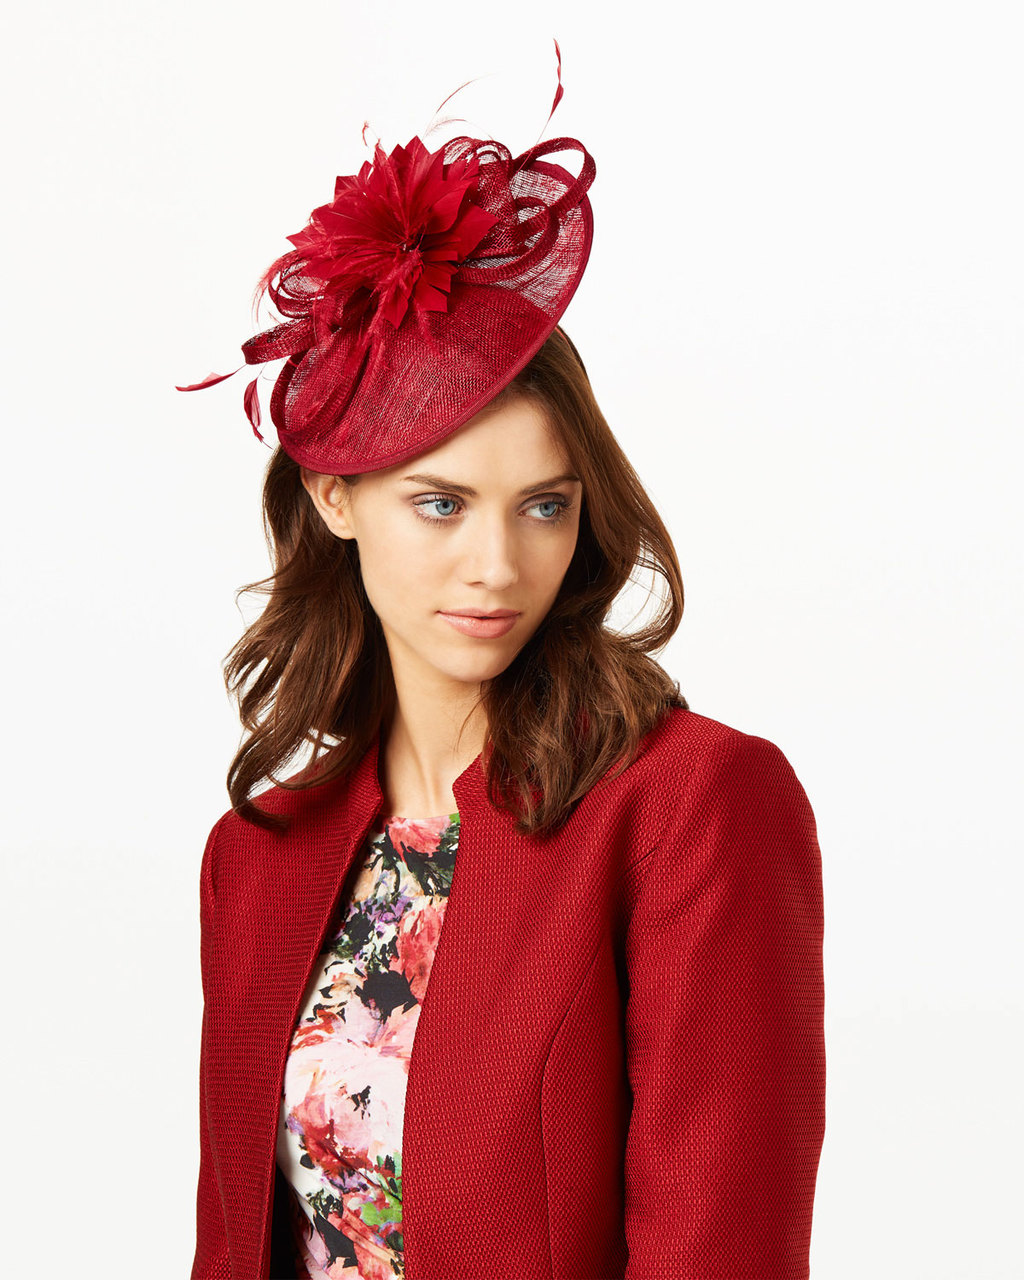 Zoe Disc - predominant colour: true red; occasions: occasion; type of pattern: standard; style: fascinator; size: standard; material: macrame/raffia/straw; pattern: plain; embellishment: feather; season: s/s 2016; wardrobe: event